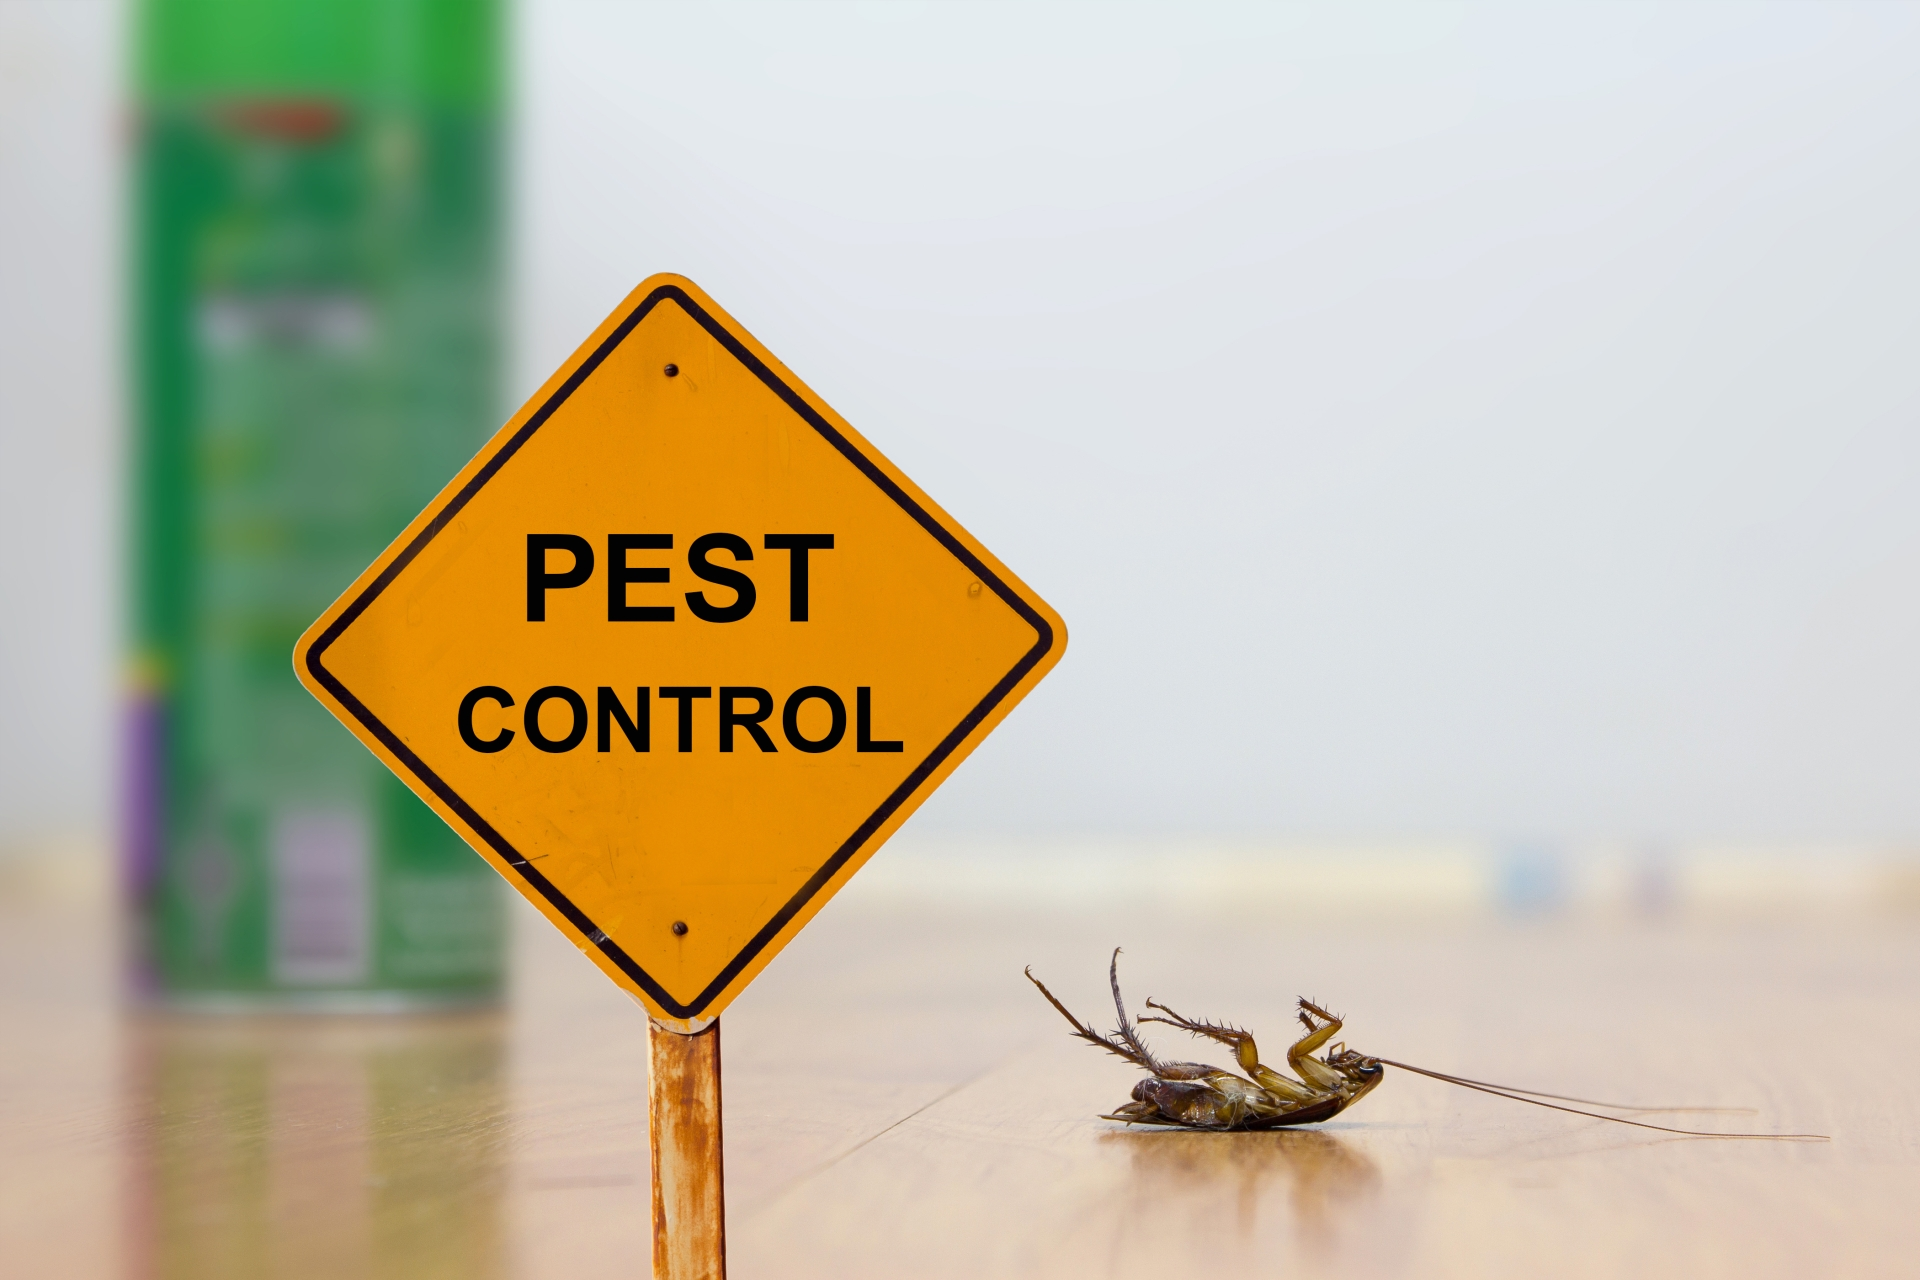 24 Hour Pest Control, Pest Control in Strawberry Hill, Whitton, TW2. Call Now 020 8166 9746